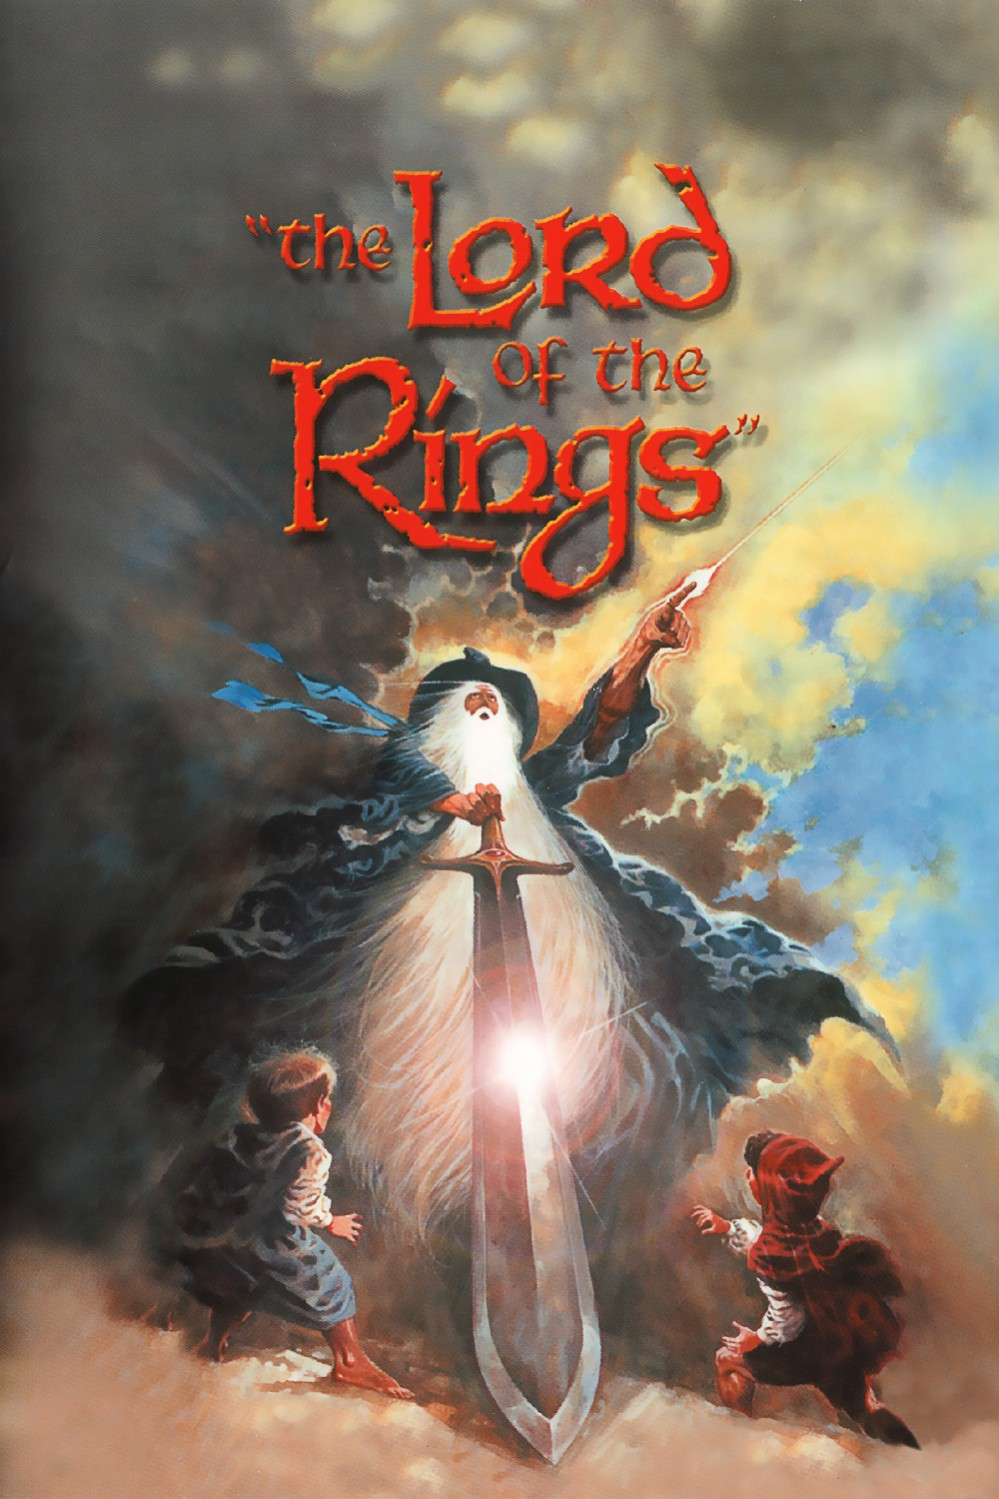 the-lord-of-the-rings-by-ralph-bakshi-1978